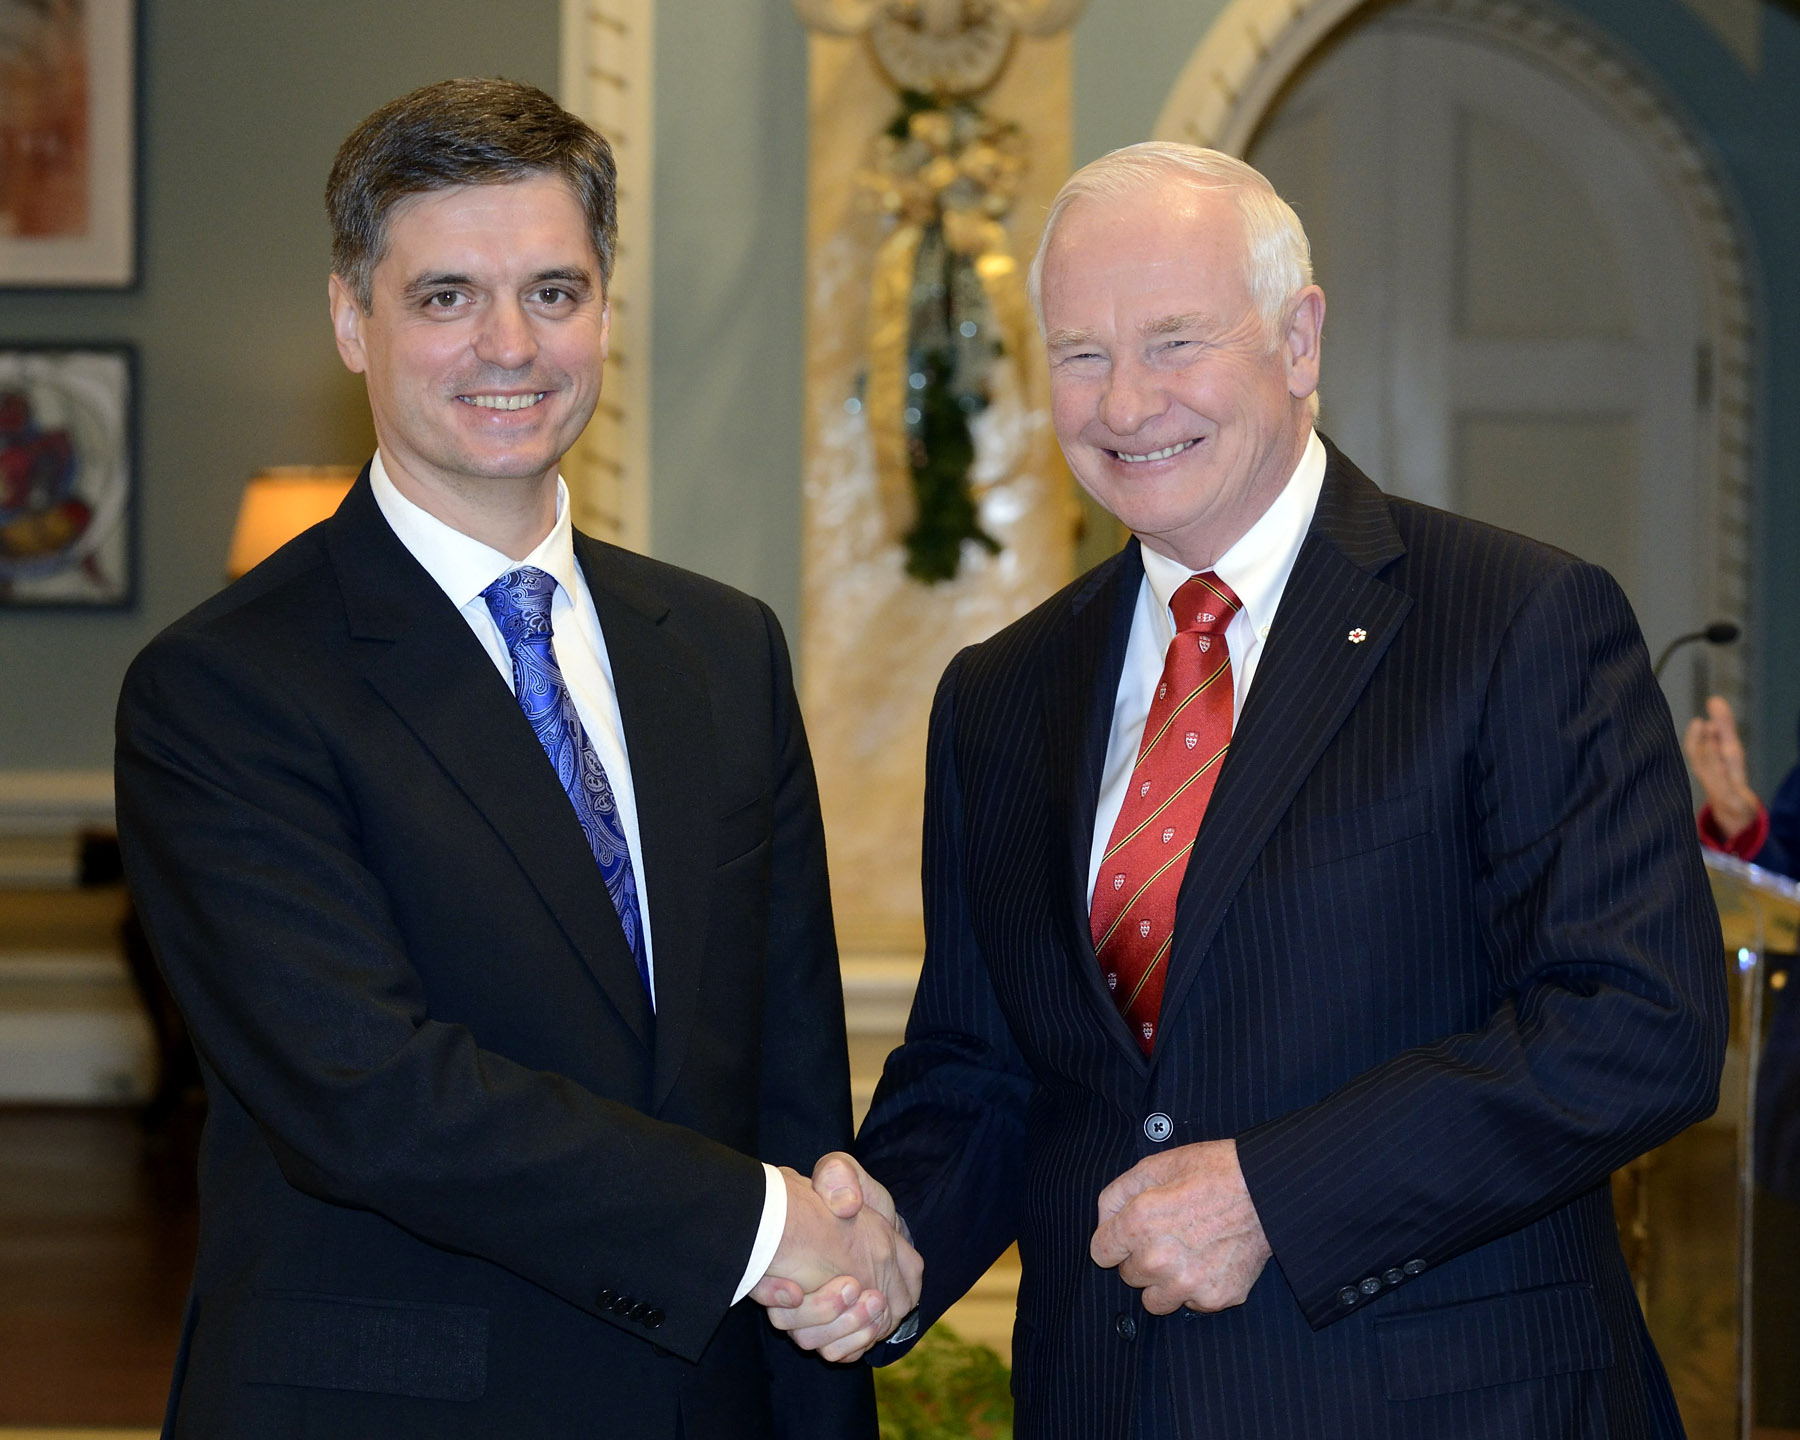 The Governor General received the credentials of His Excellency Vadym Prystaiko, Ambassador of Ukraine.